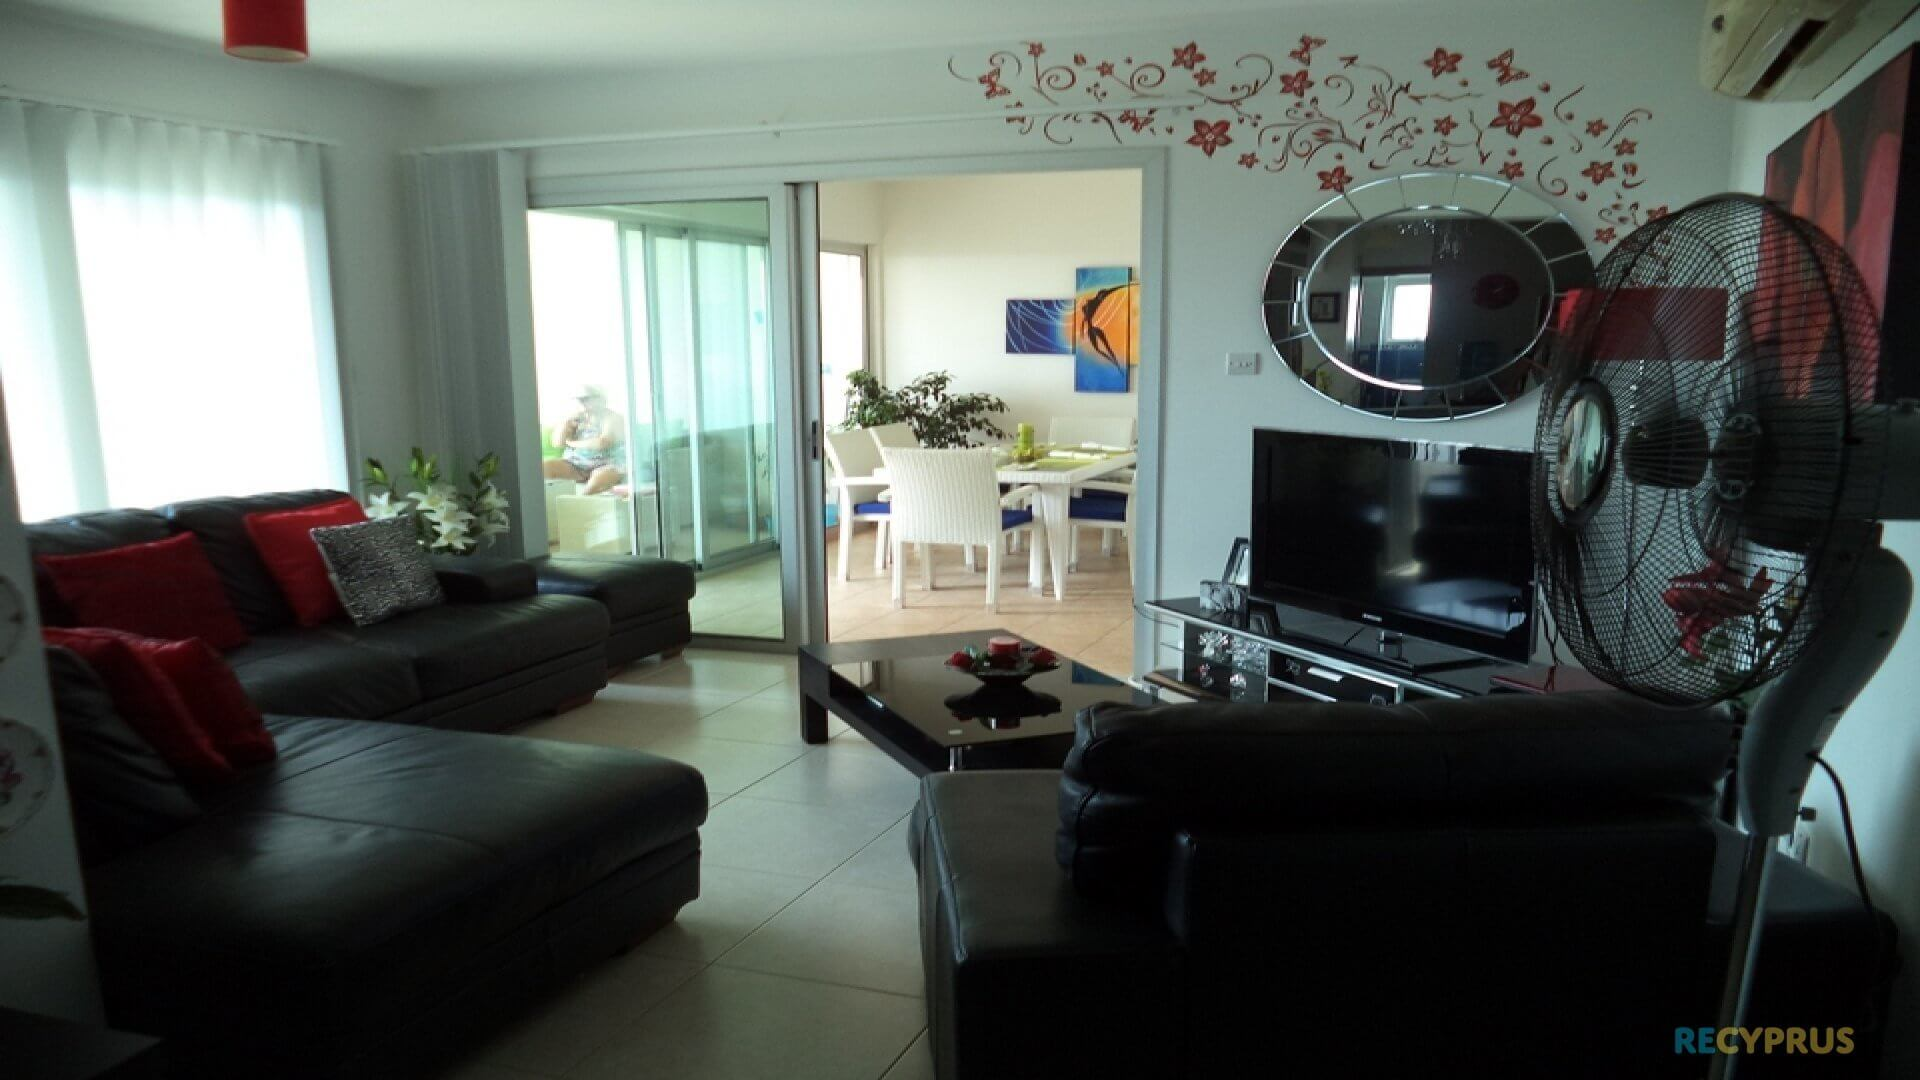 Apartment for sale Kapparis Famagusta Cyprus 4 3463